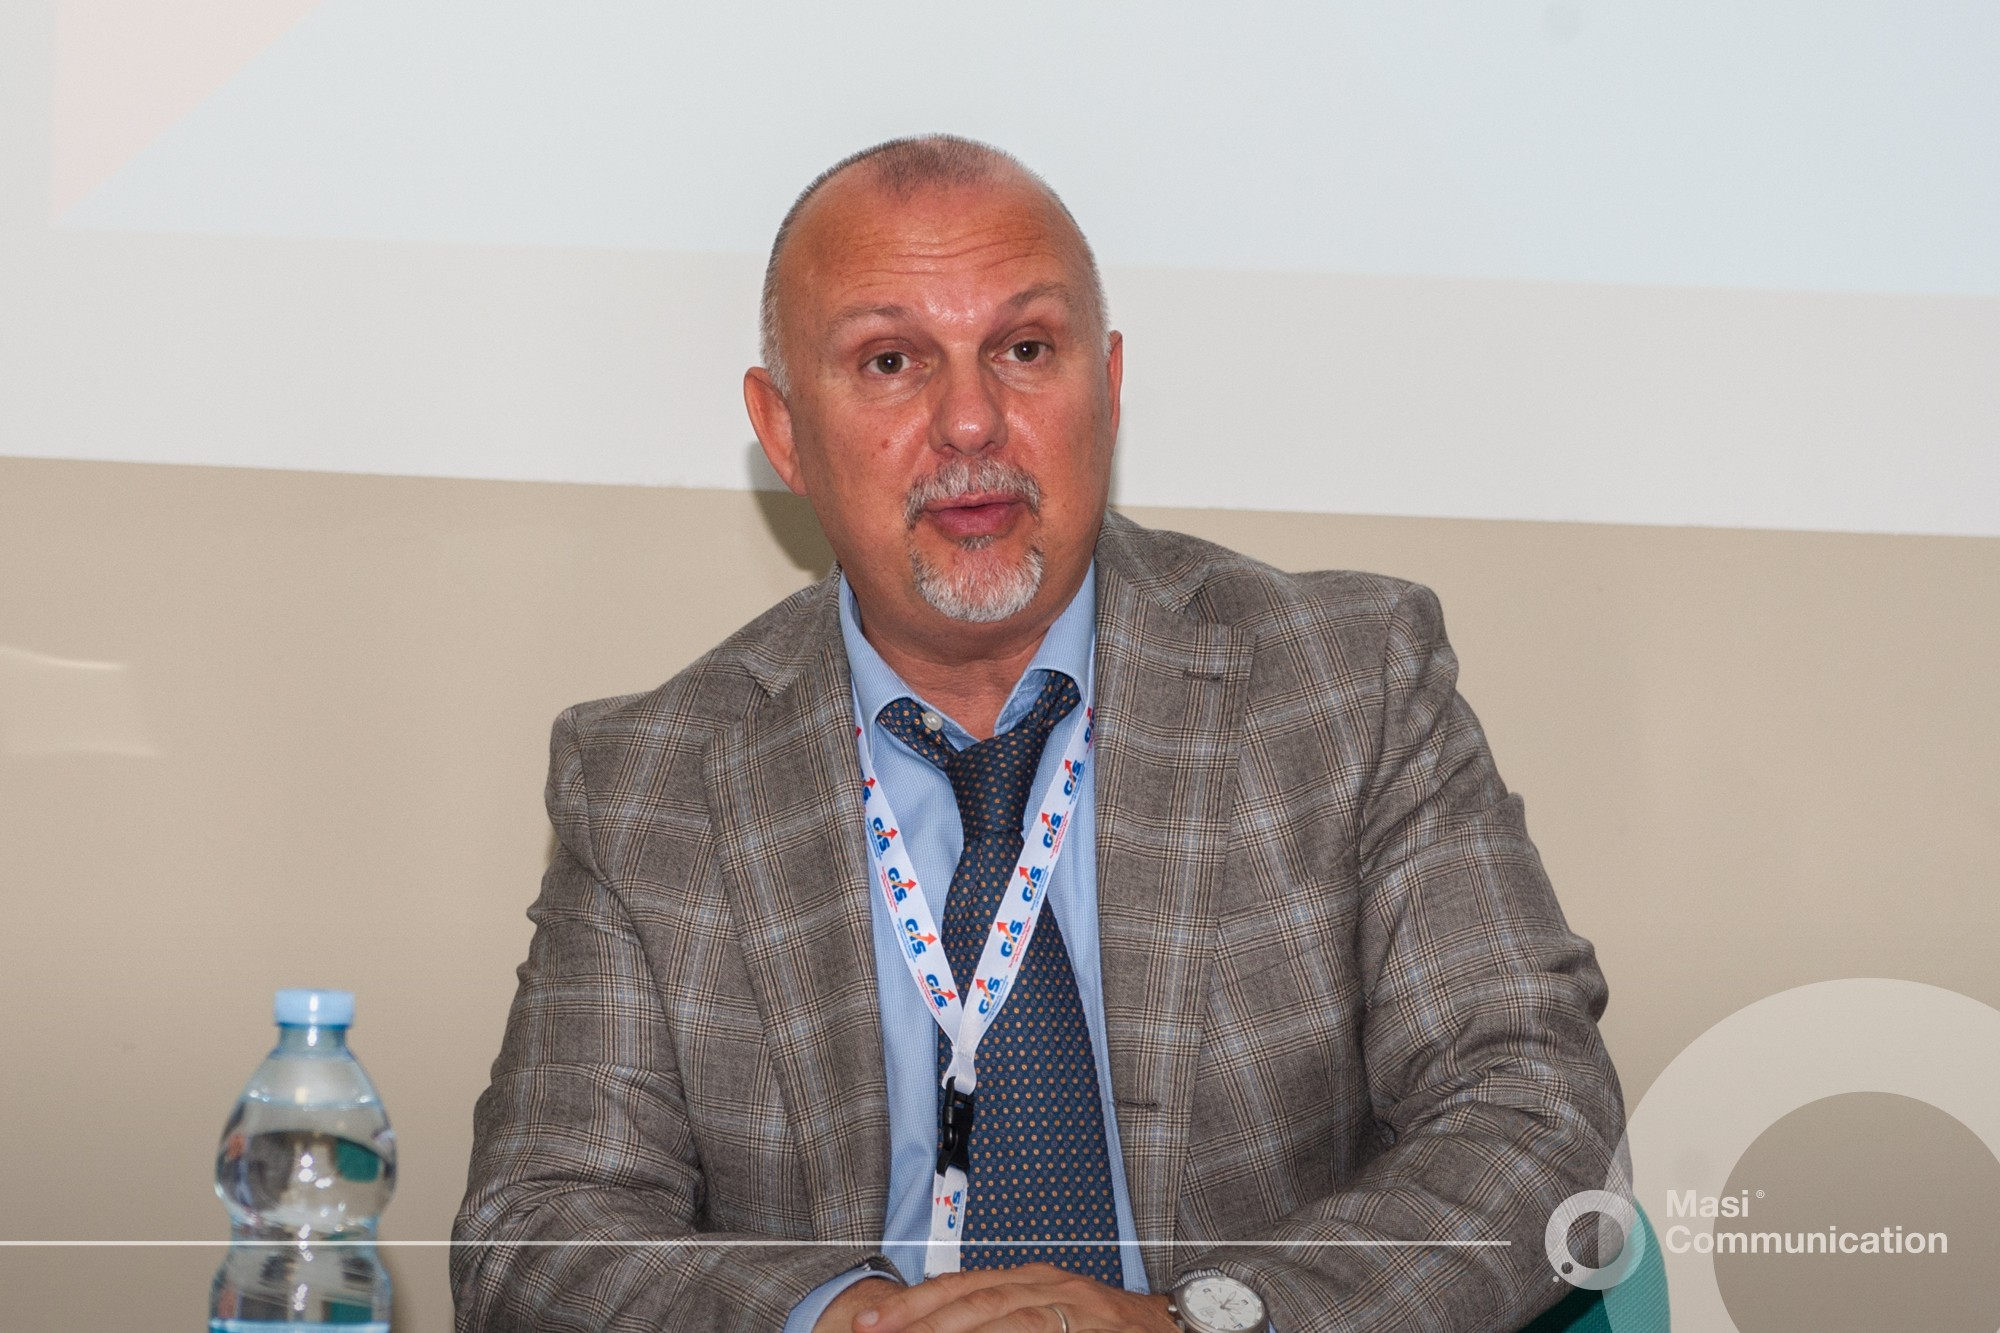 Michele Crivellaro, Product Manager Service & Rental